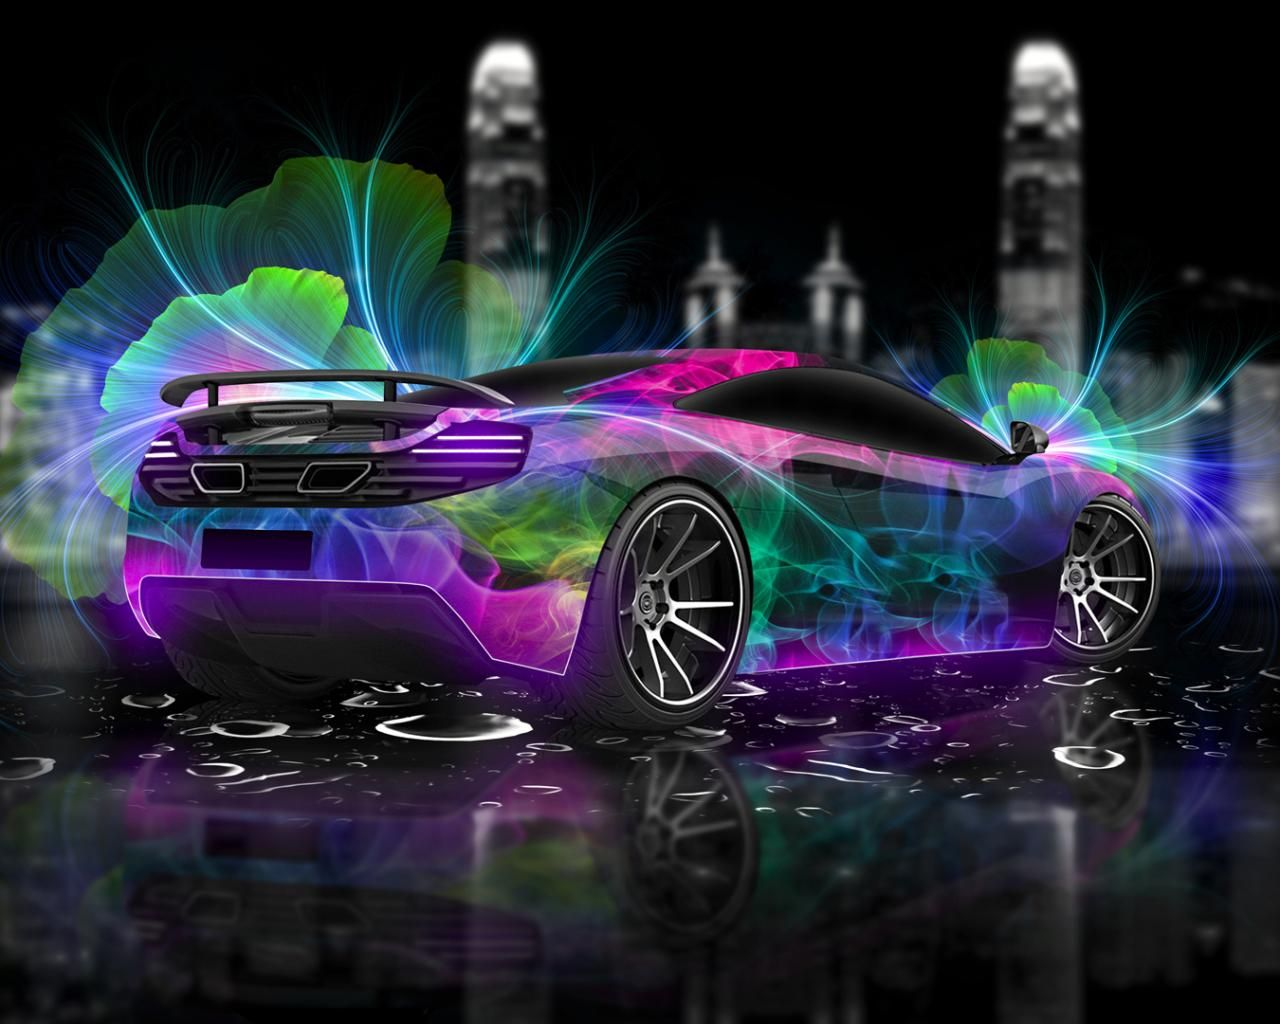 Super Latest Cool Wallpapers Jpg 1280 1024 Cool Wallpapers Cars Cool Car Backgrounds Cool Cars